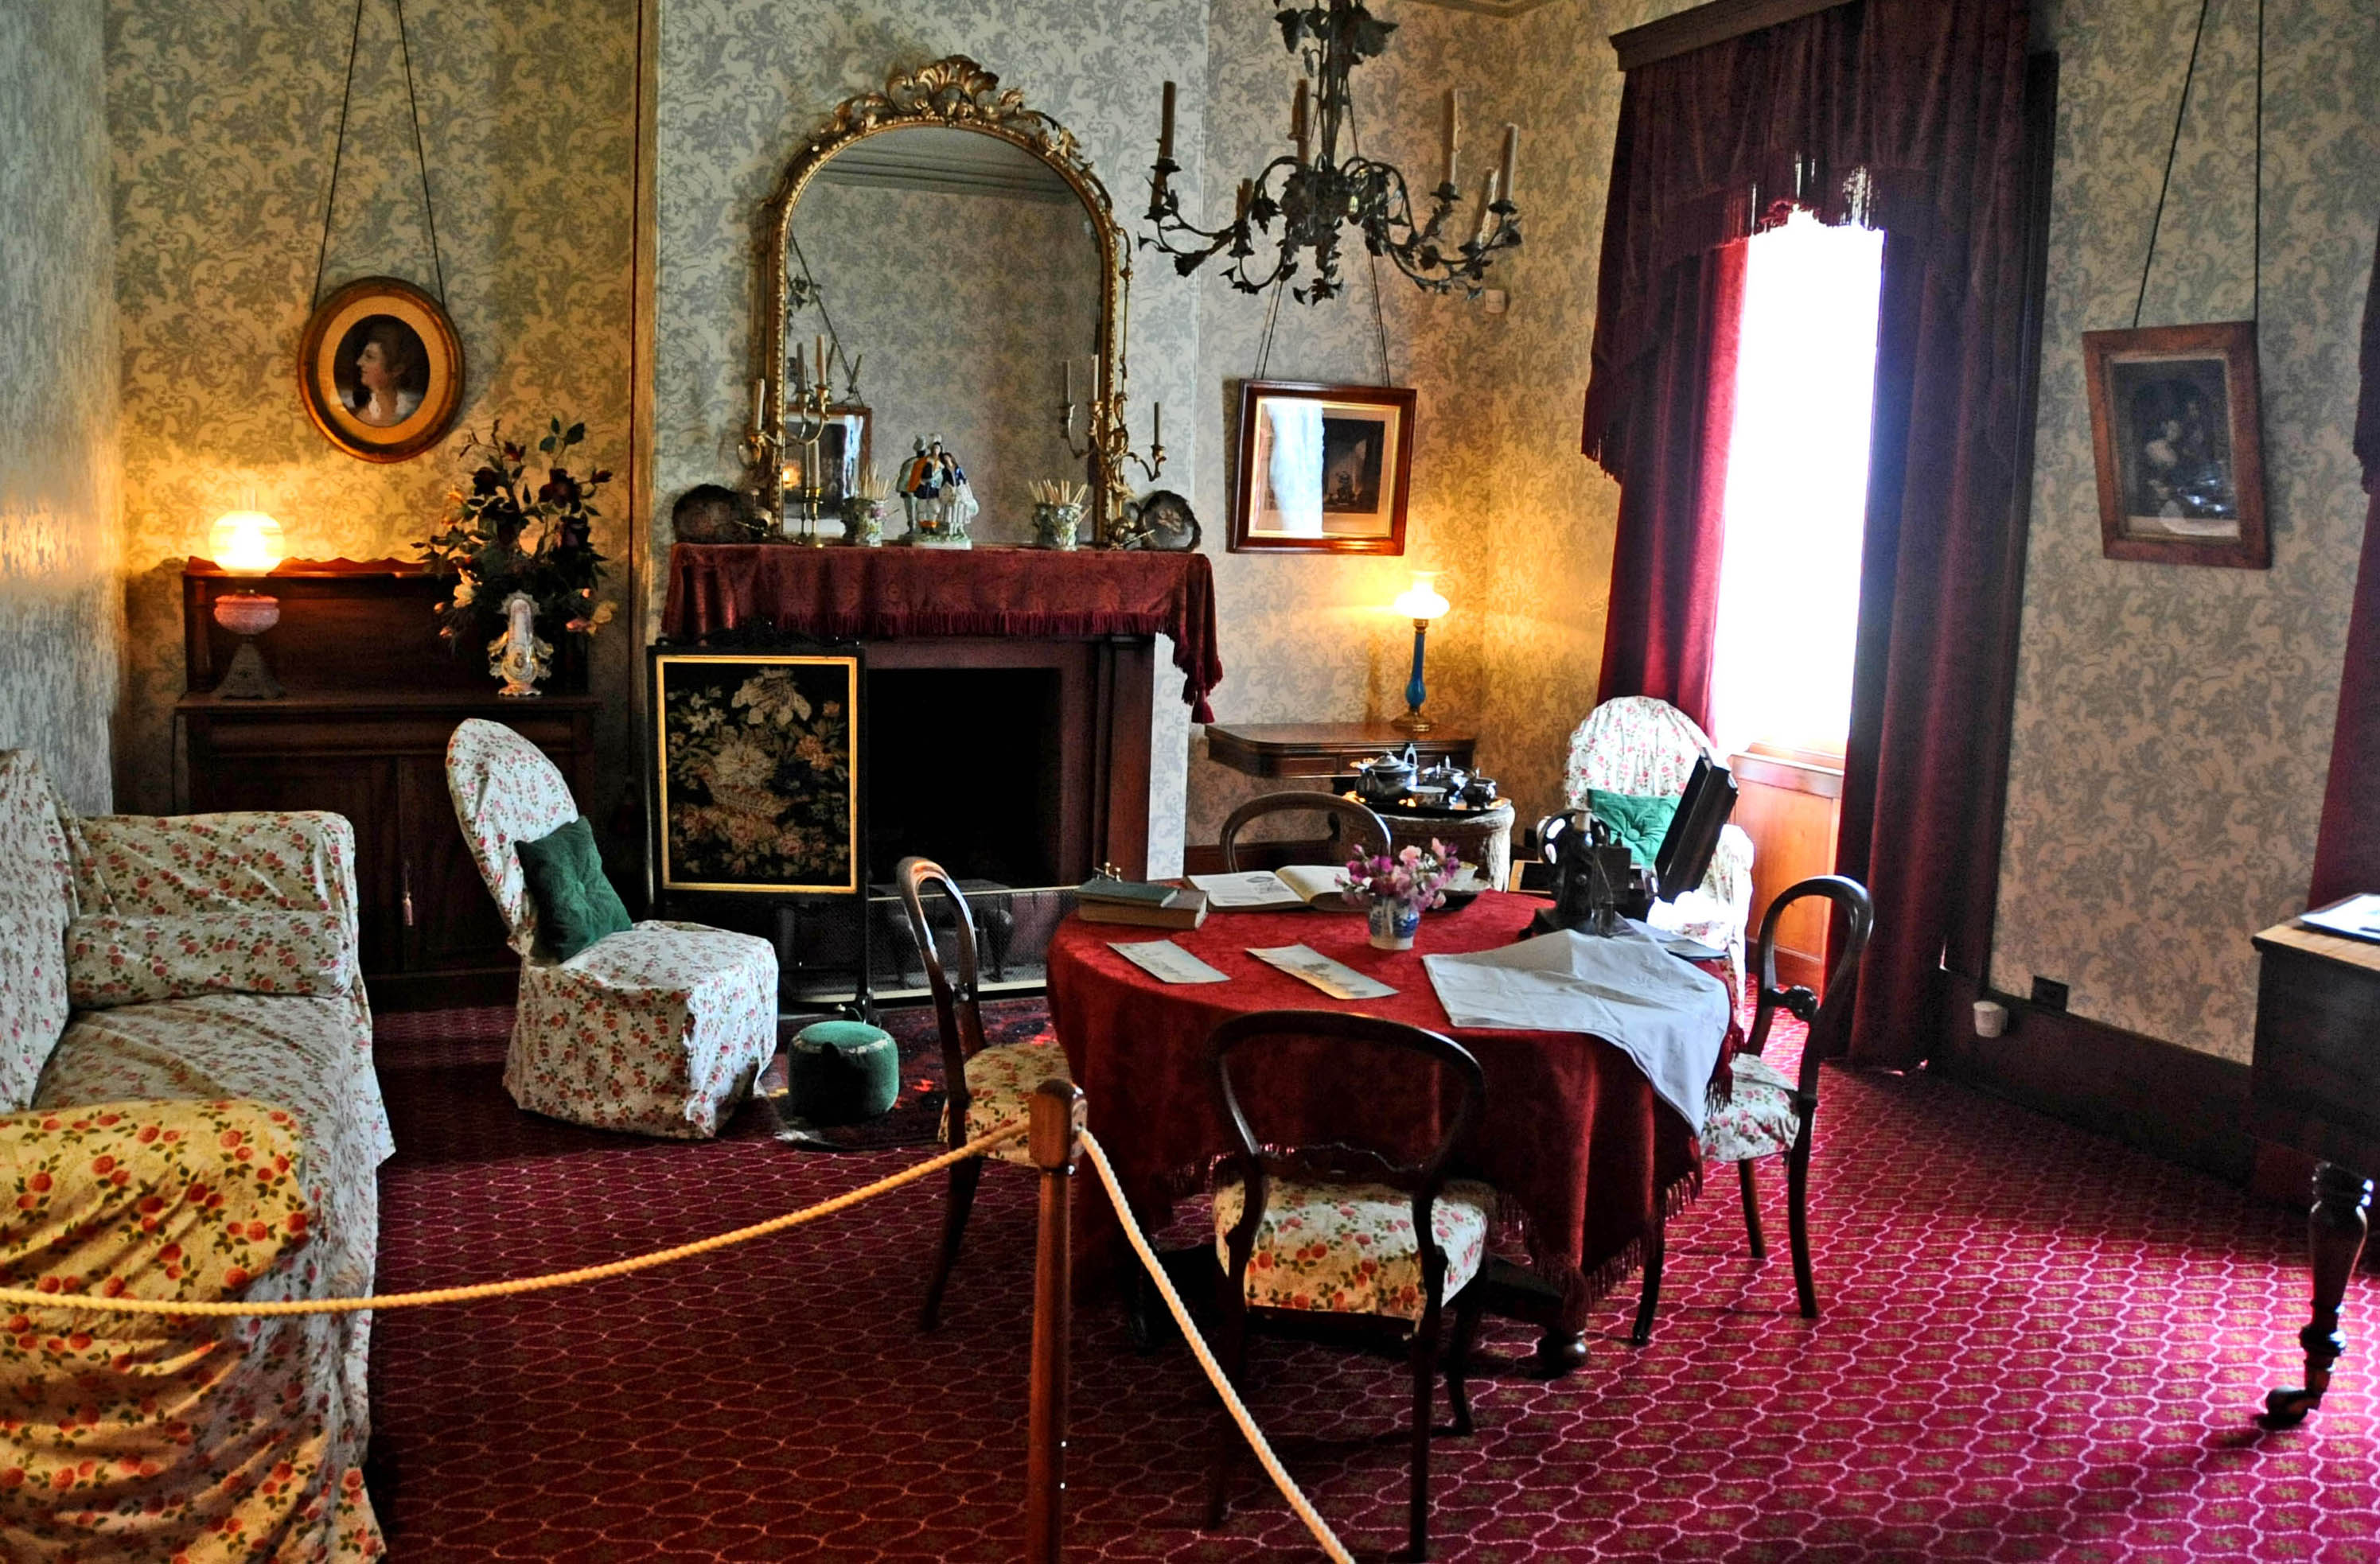 Victorian Decorating With Images Jessgerald Storify